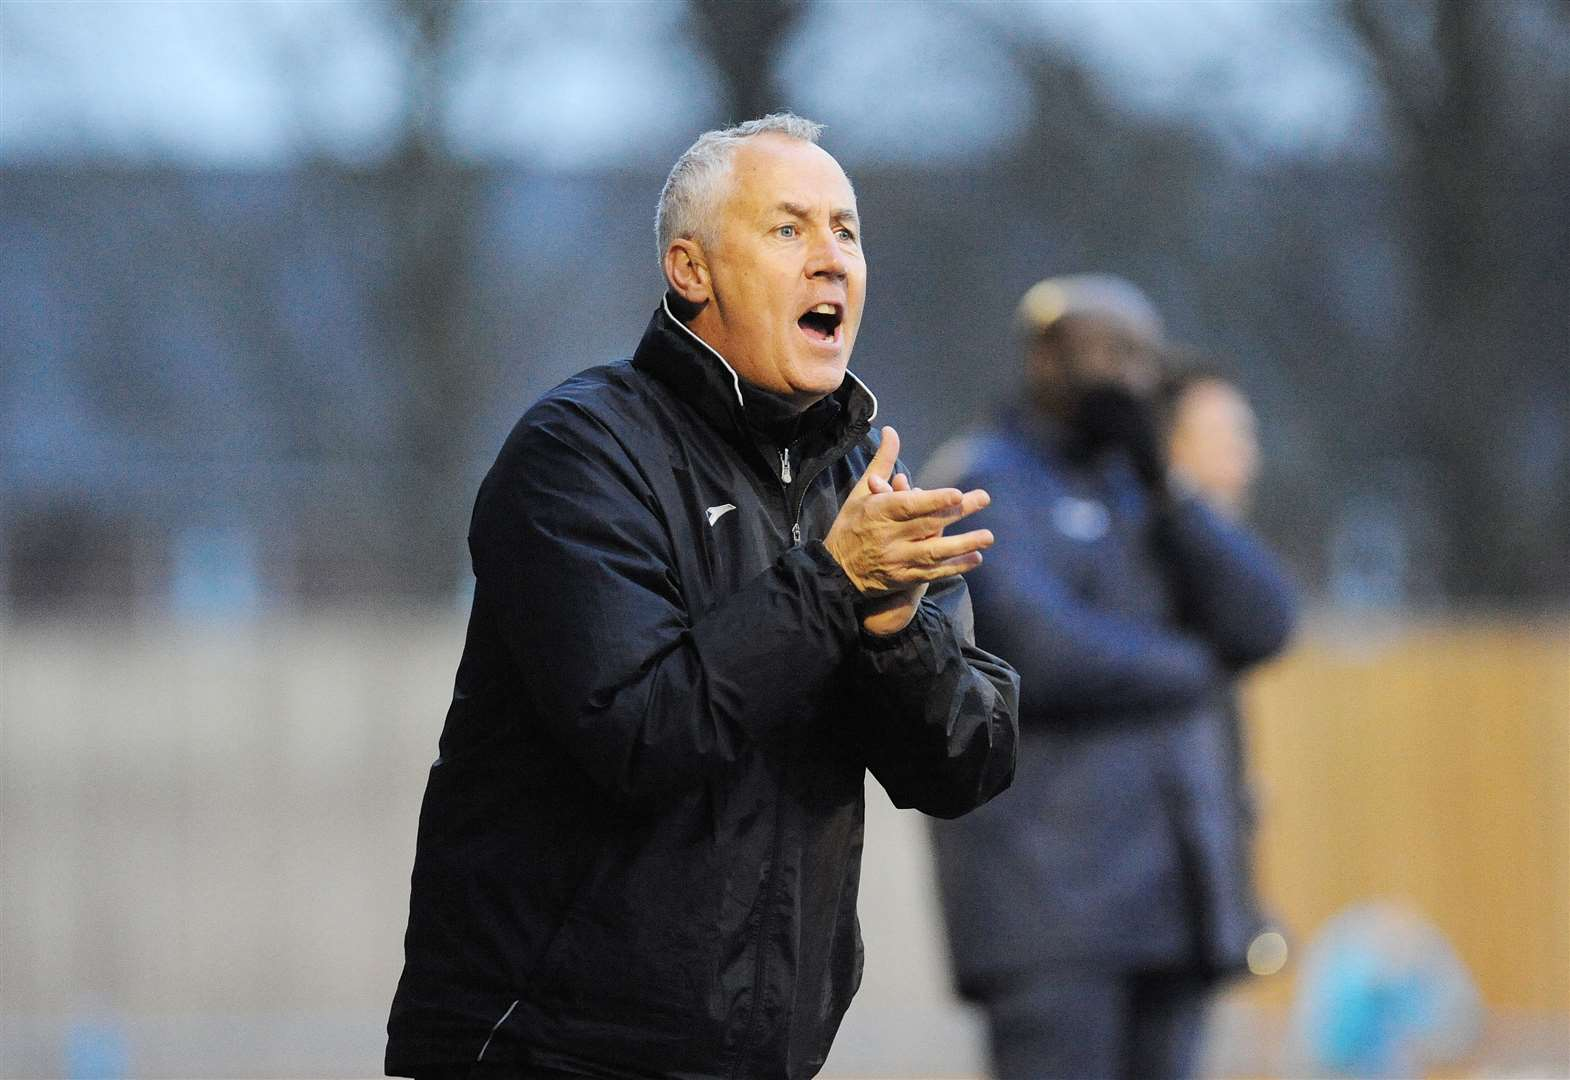 """We know how hard it is going to be, but we'll go out and give it a real go. It's a one-off game and we've got nothing to lose."" - Linnets boss Ian Culverhouse on FA Trophy tie against Dover Athletic"